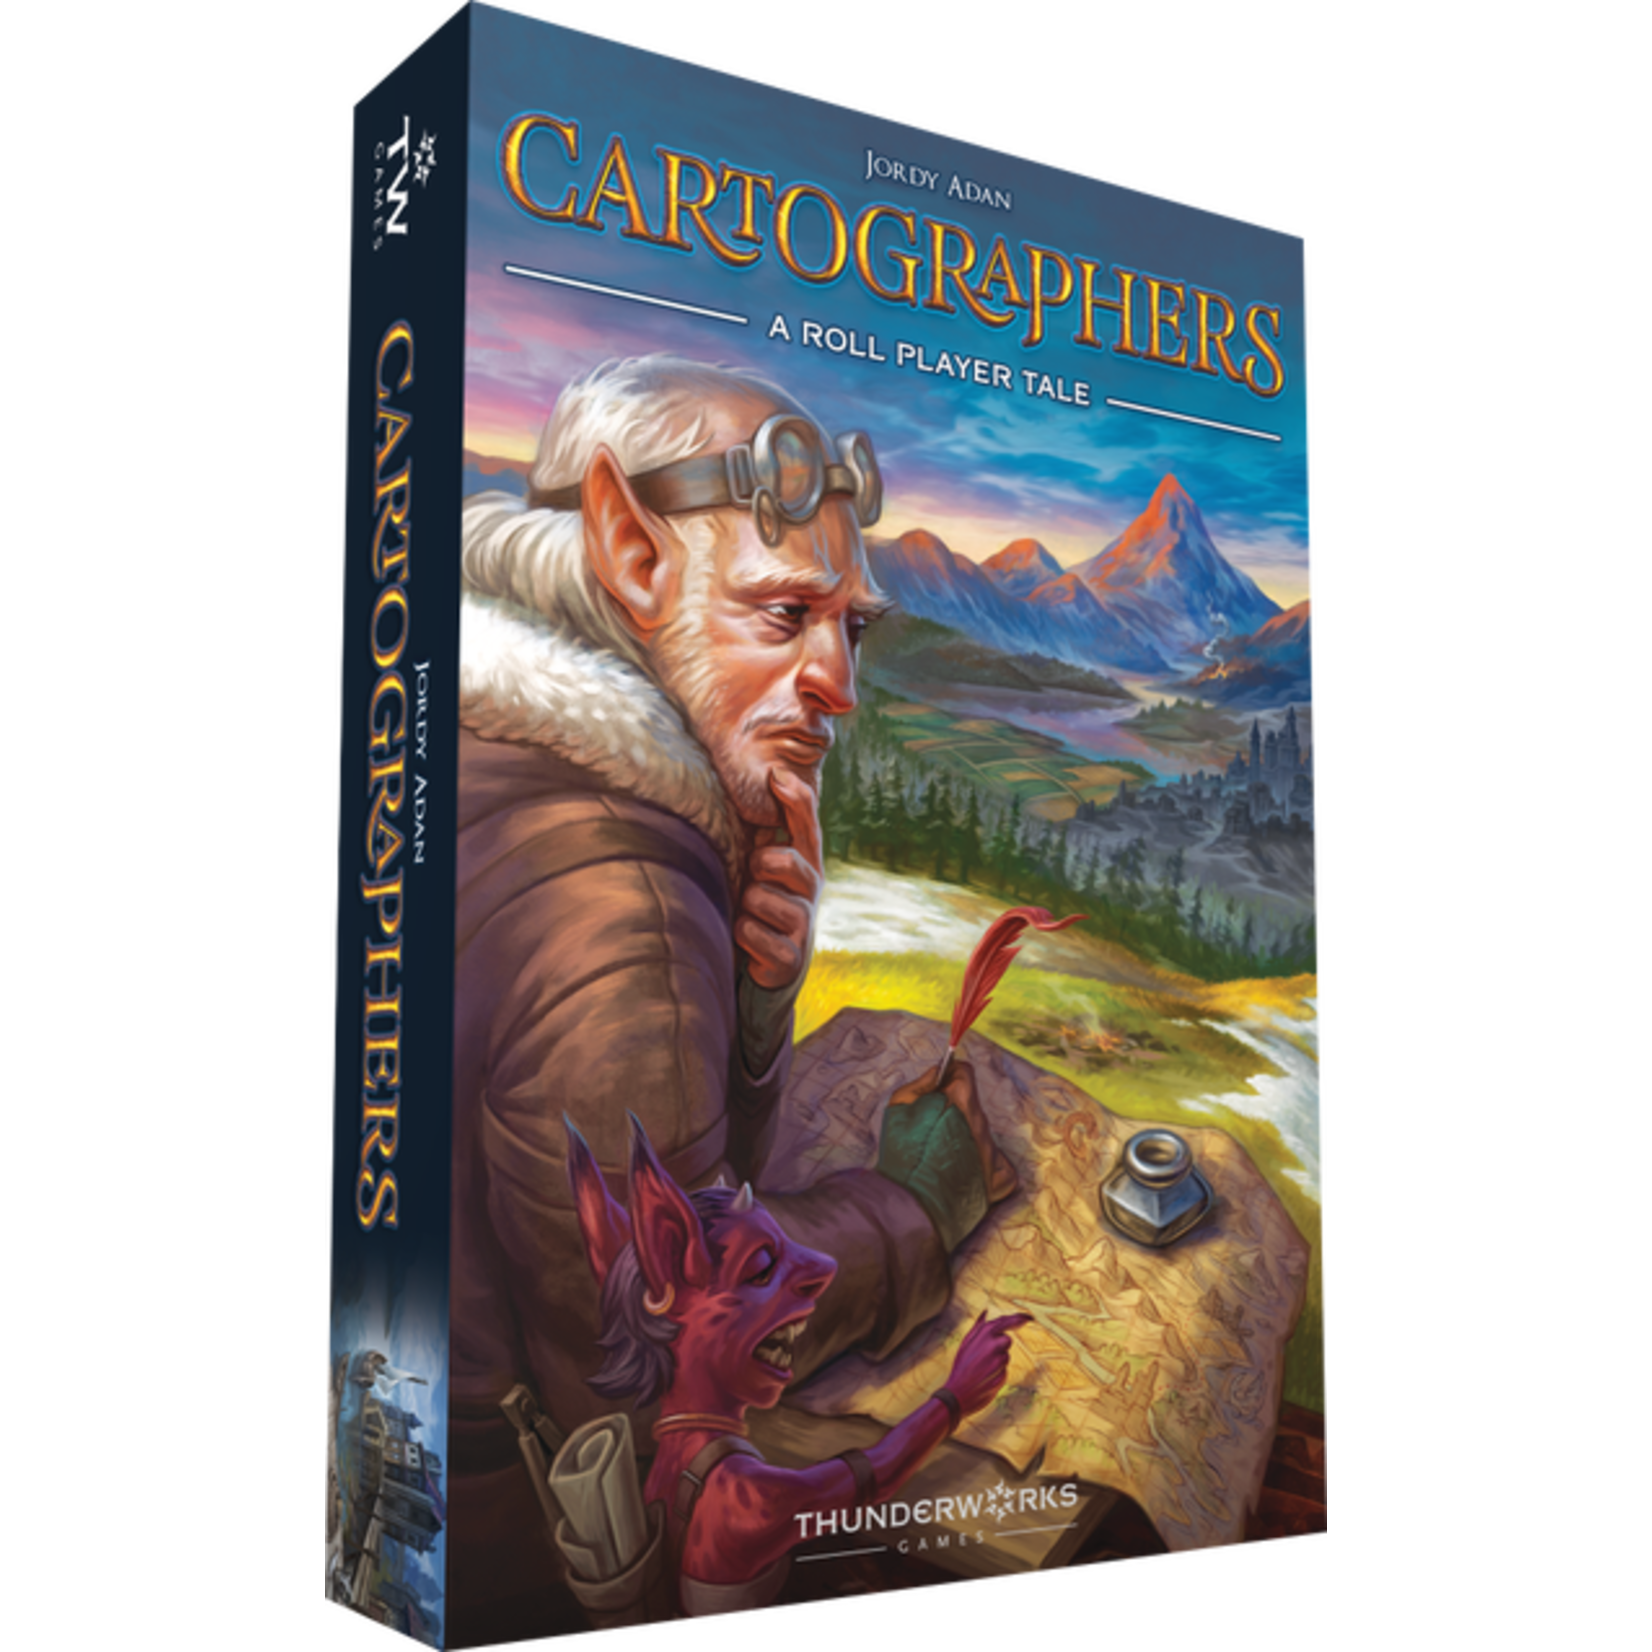 Thunderworks Games Cartographers A Roll Player Tale